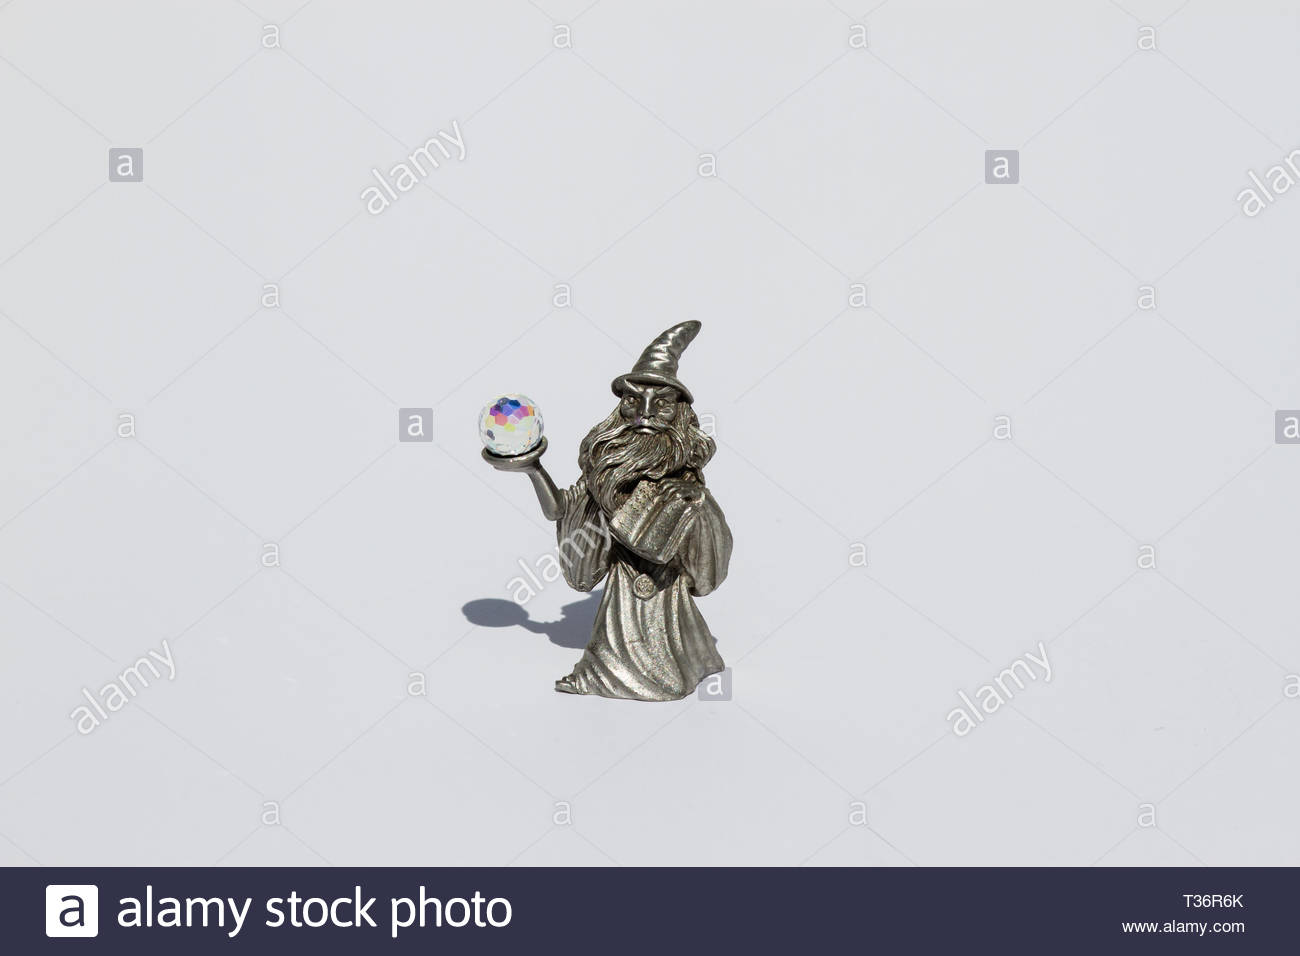 Pewter wizard figurine with a crystal ball  Resembles